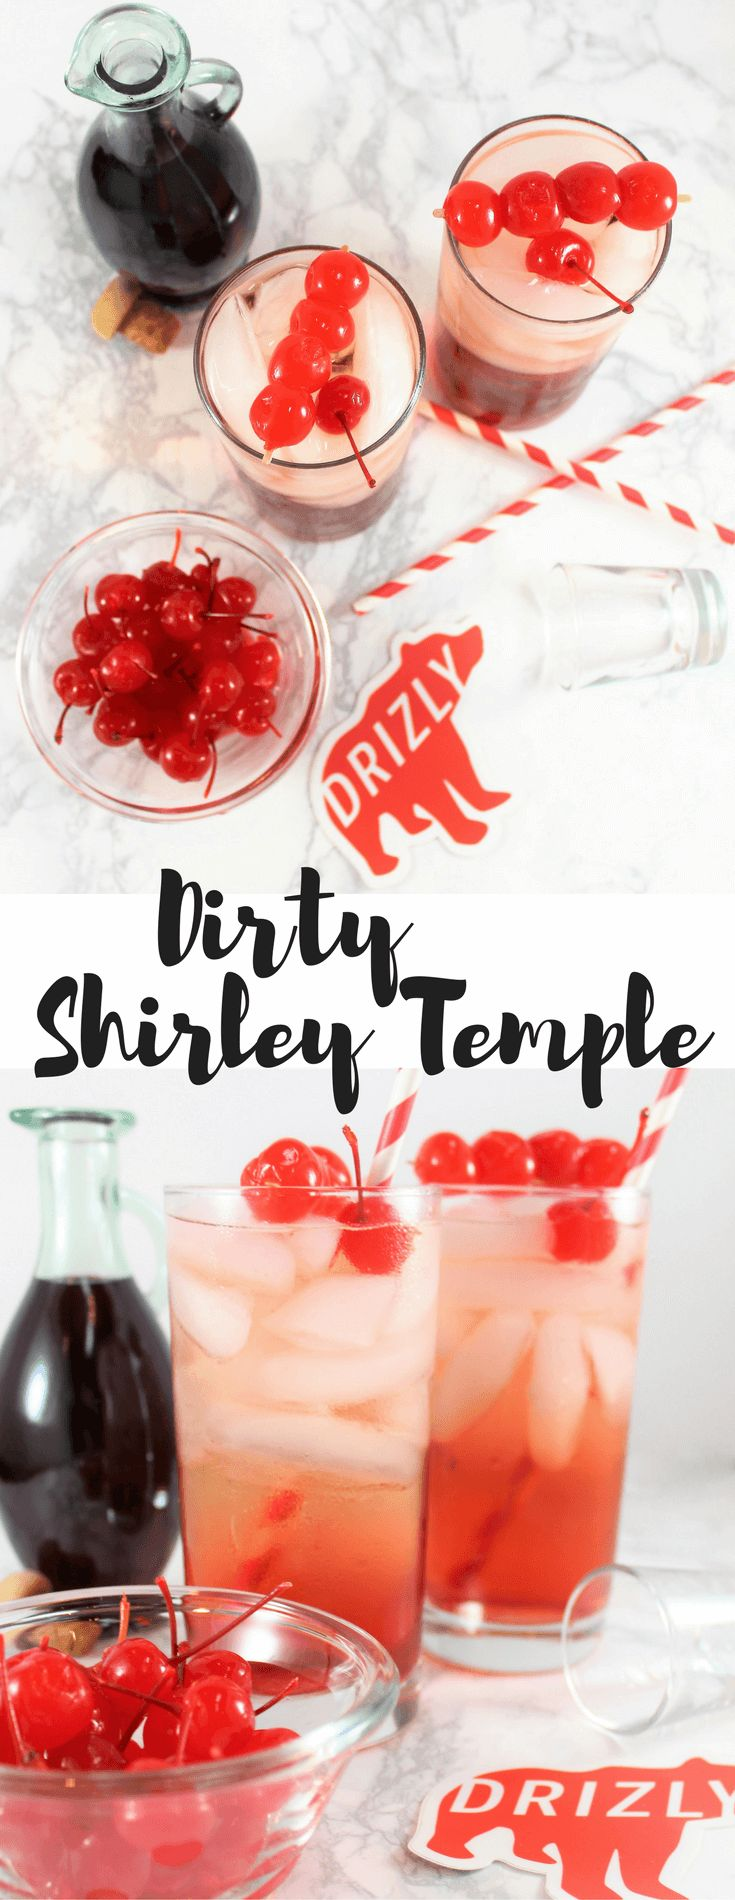 Dirty Shirley Temples | Alcohol | @drizly #ad